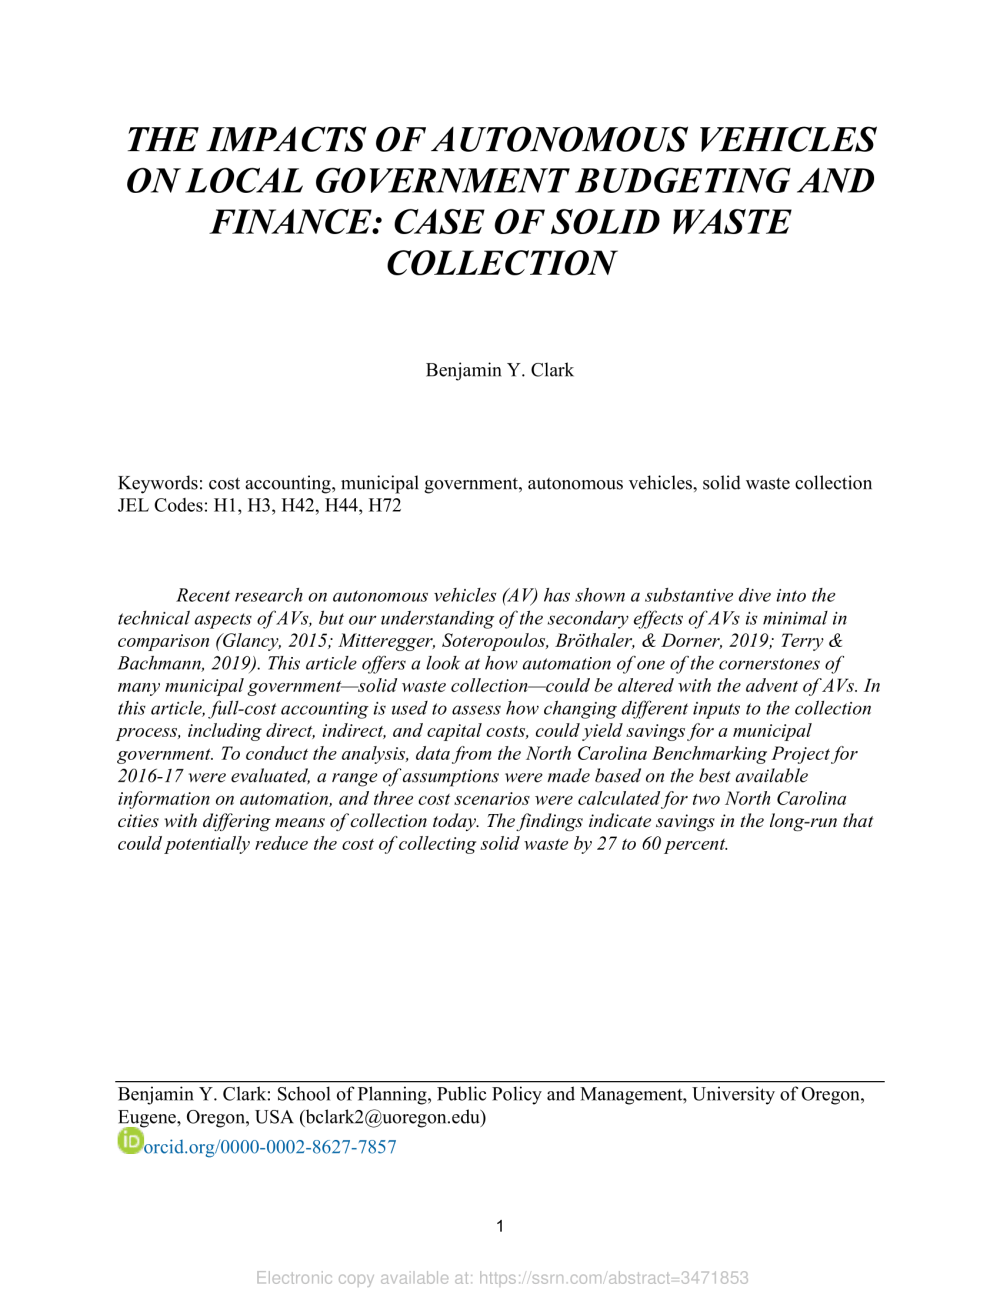 The Impacts of Autonomous Vehicles on Local Government Budgeting and Finance: Case of Solid Waste Collection